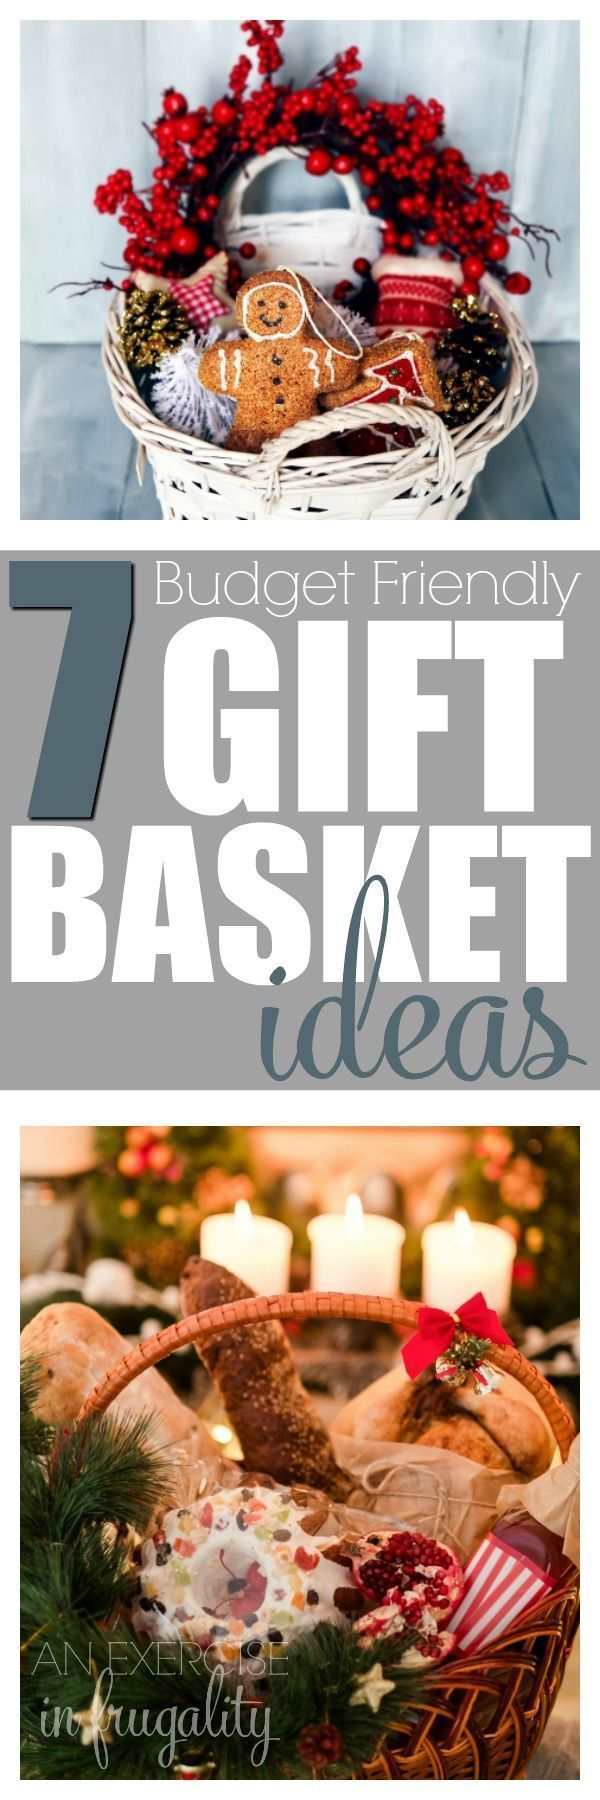 Holiday Gift Ideas on a Budget | Budget friendly gift, Christmas on a budget, Diy gifts coworkers